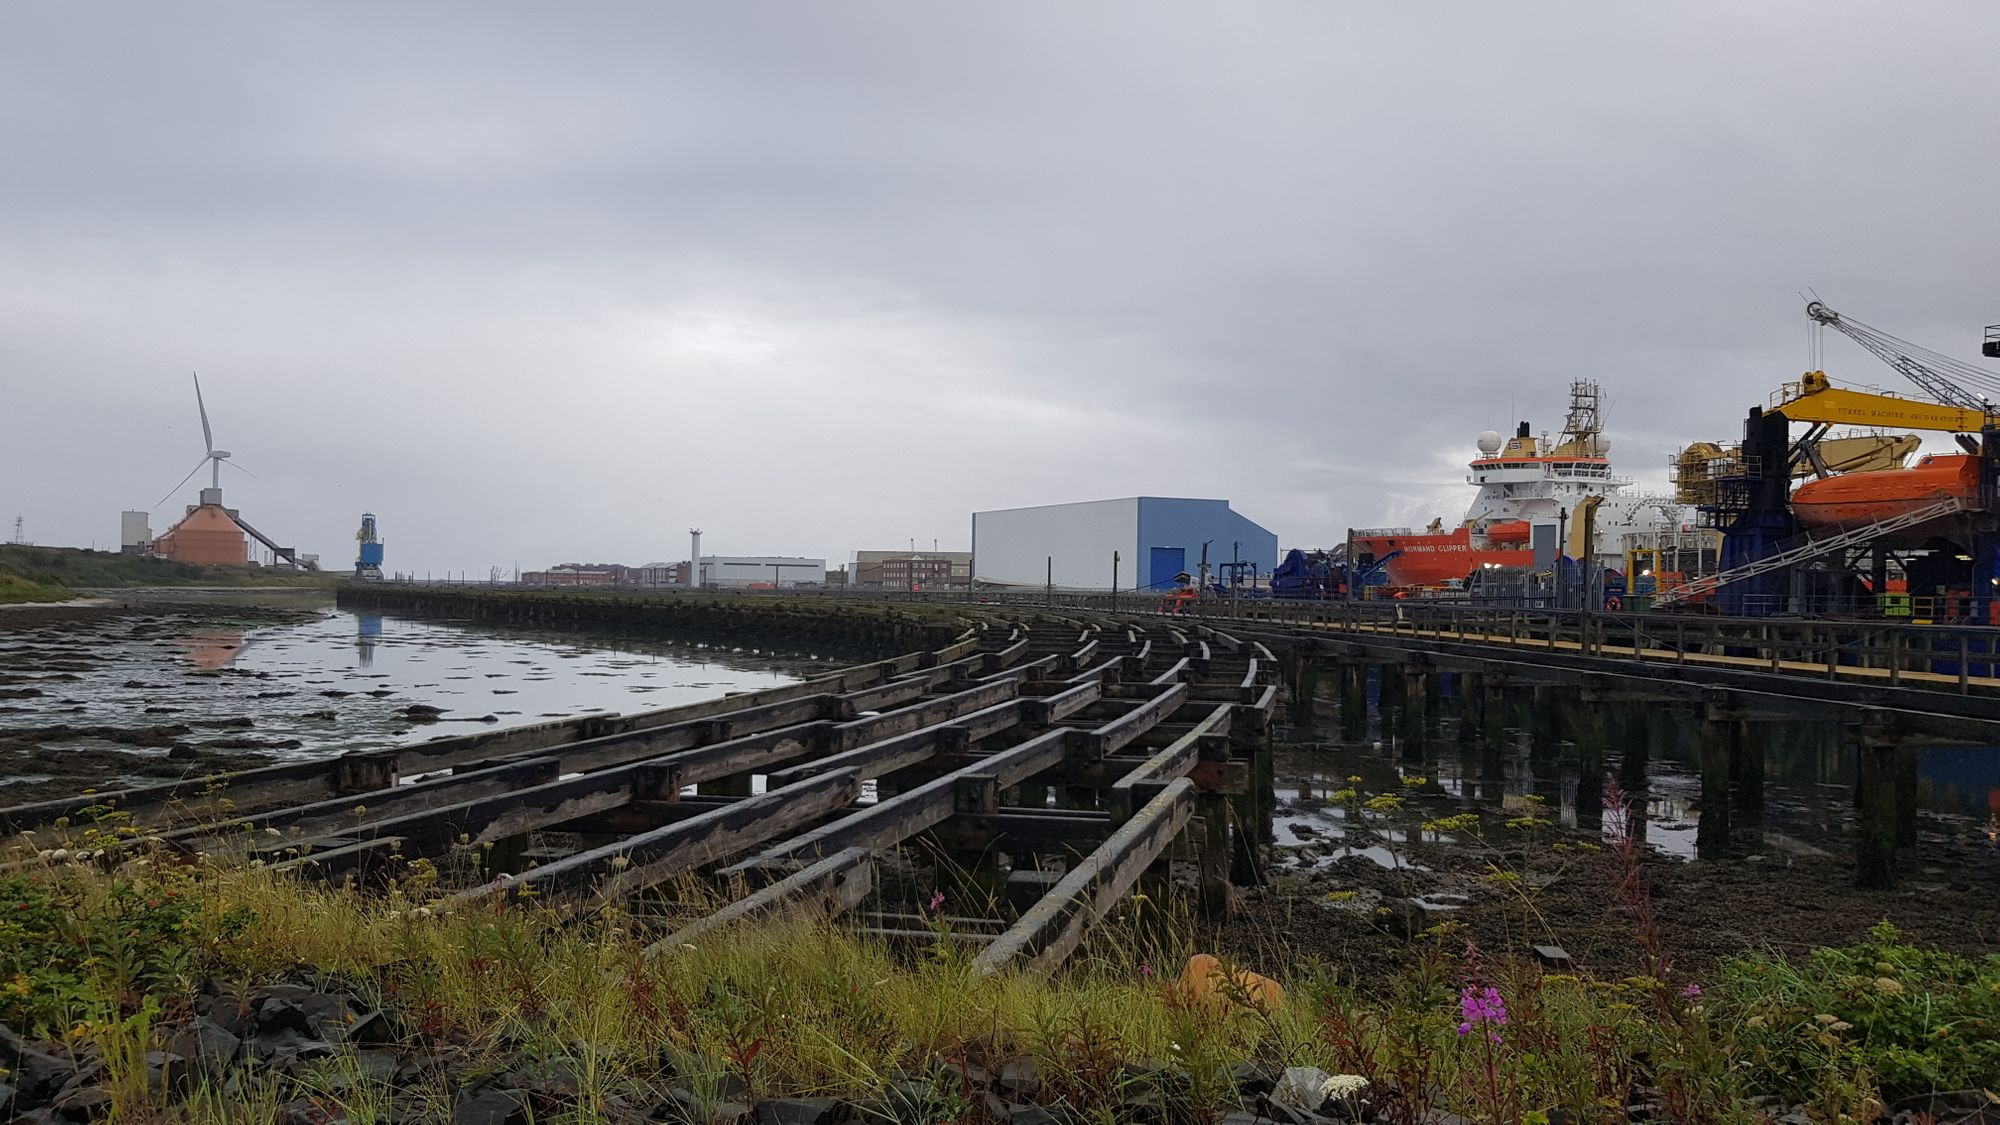 Blyth: former coal staithes with North Sea Link HVDC cable-laying ship